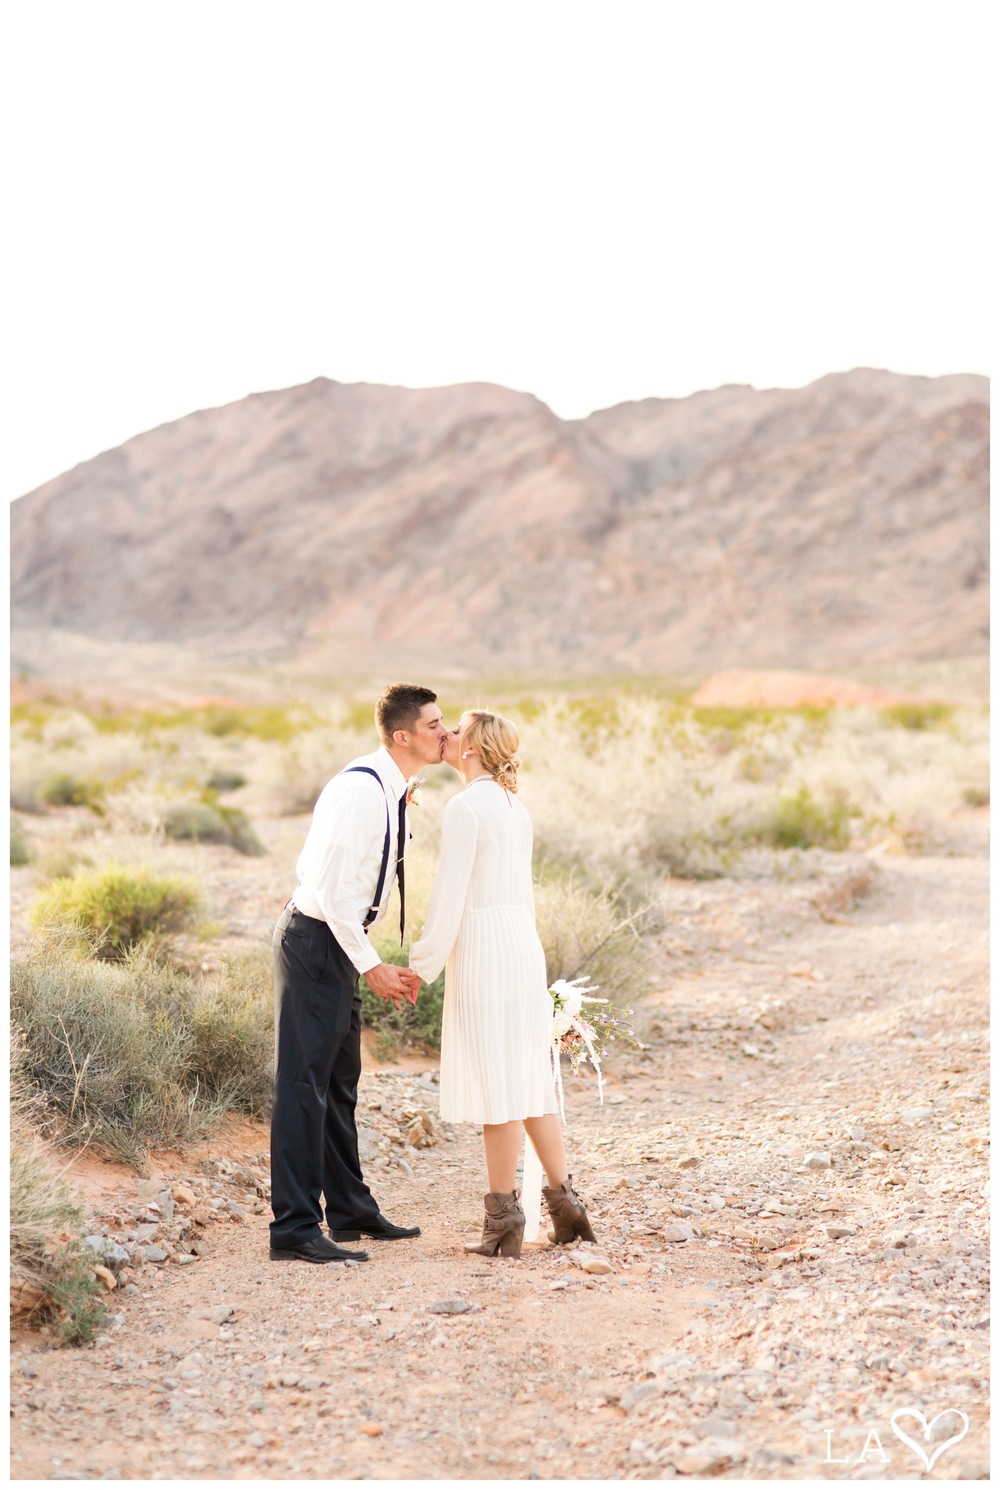 Las Vegas Wedding Photography - Lake Mead - Brittany and Jon-16.jpg